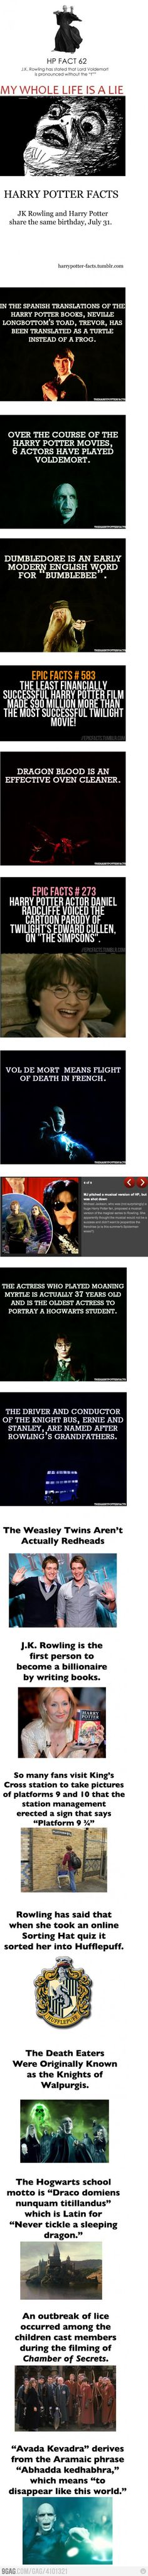 20 Facts You May Not Know About Harry Potter- Some of these are really surprising.. but i knew most of them